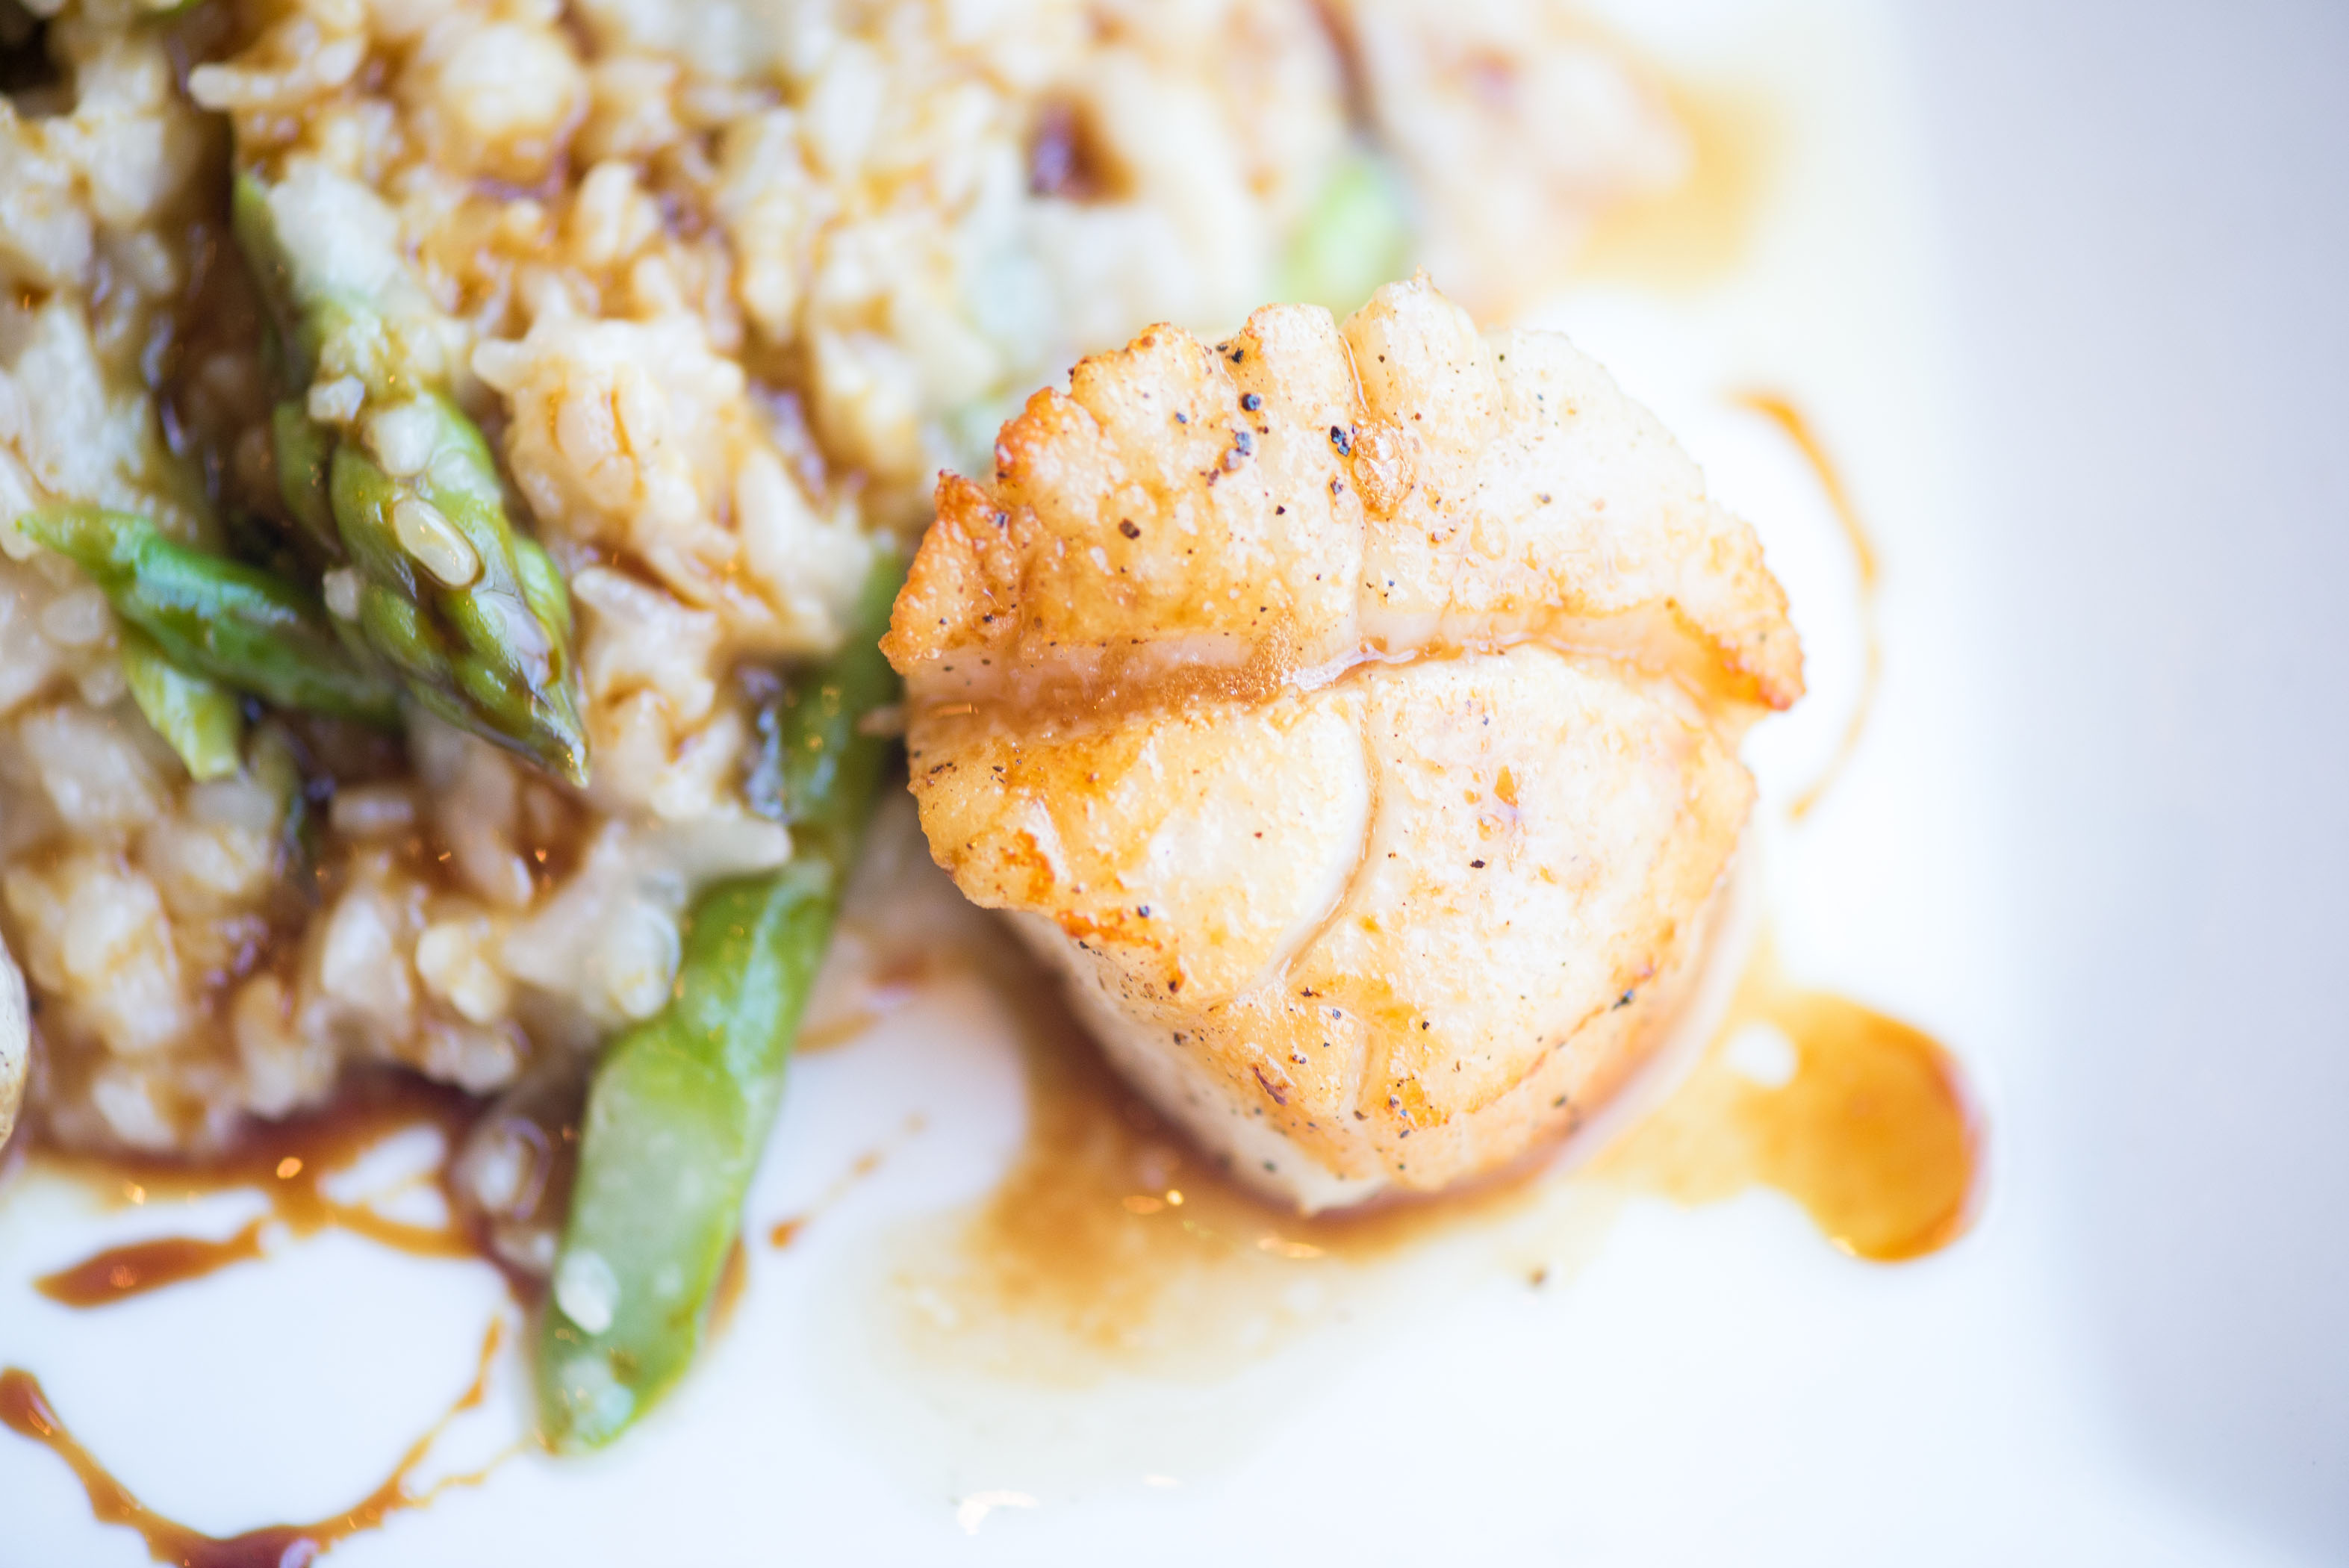 Scallops from Greenville Chef Image